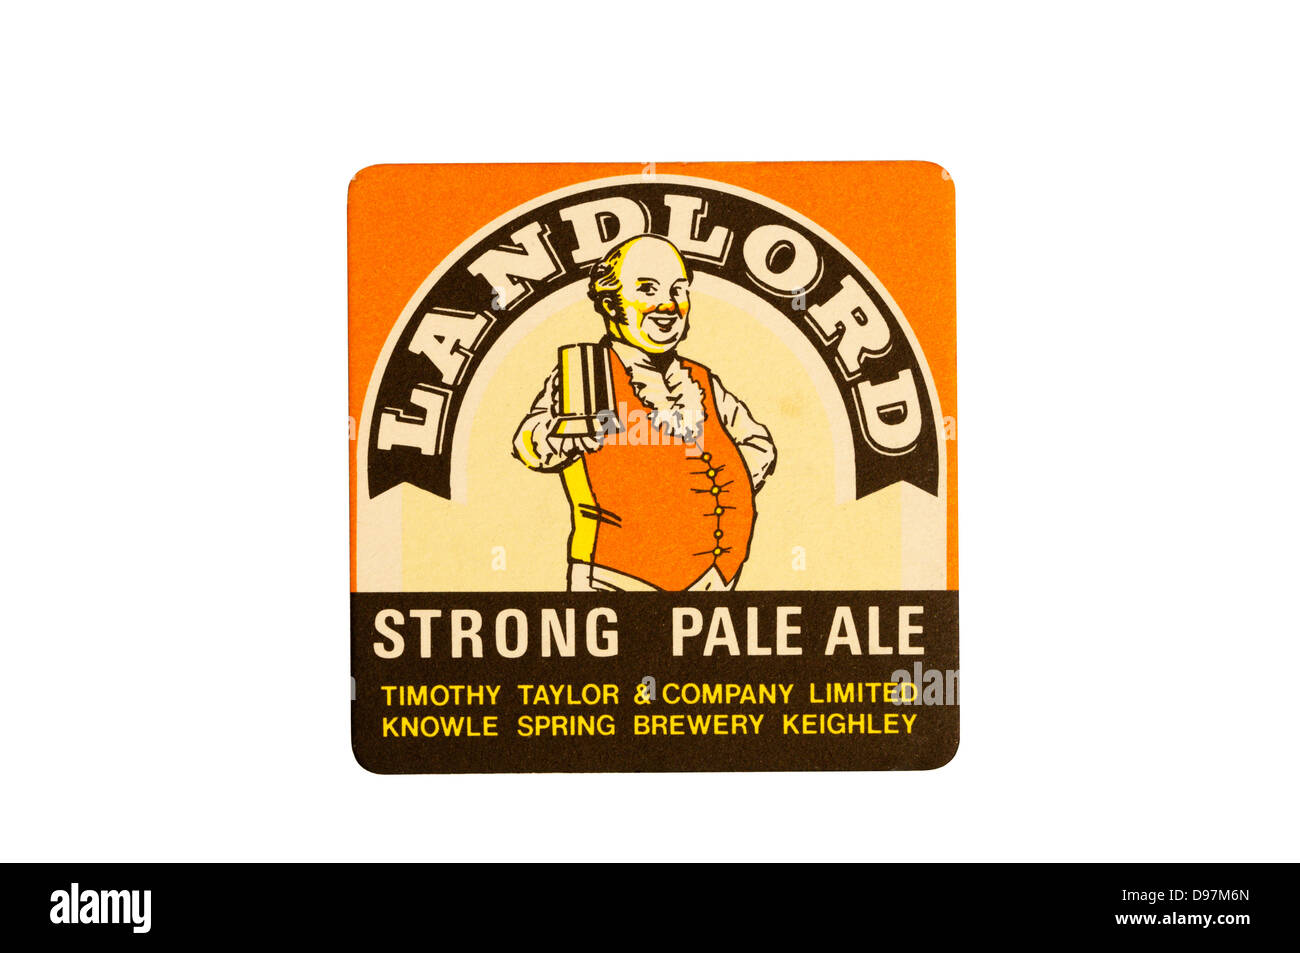 Landlord Strong Pale Ale beer mat. Stock Photo